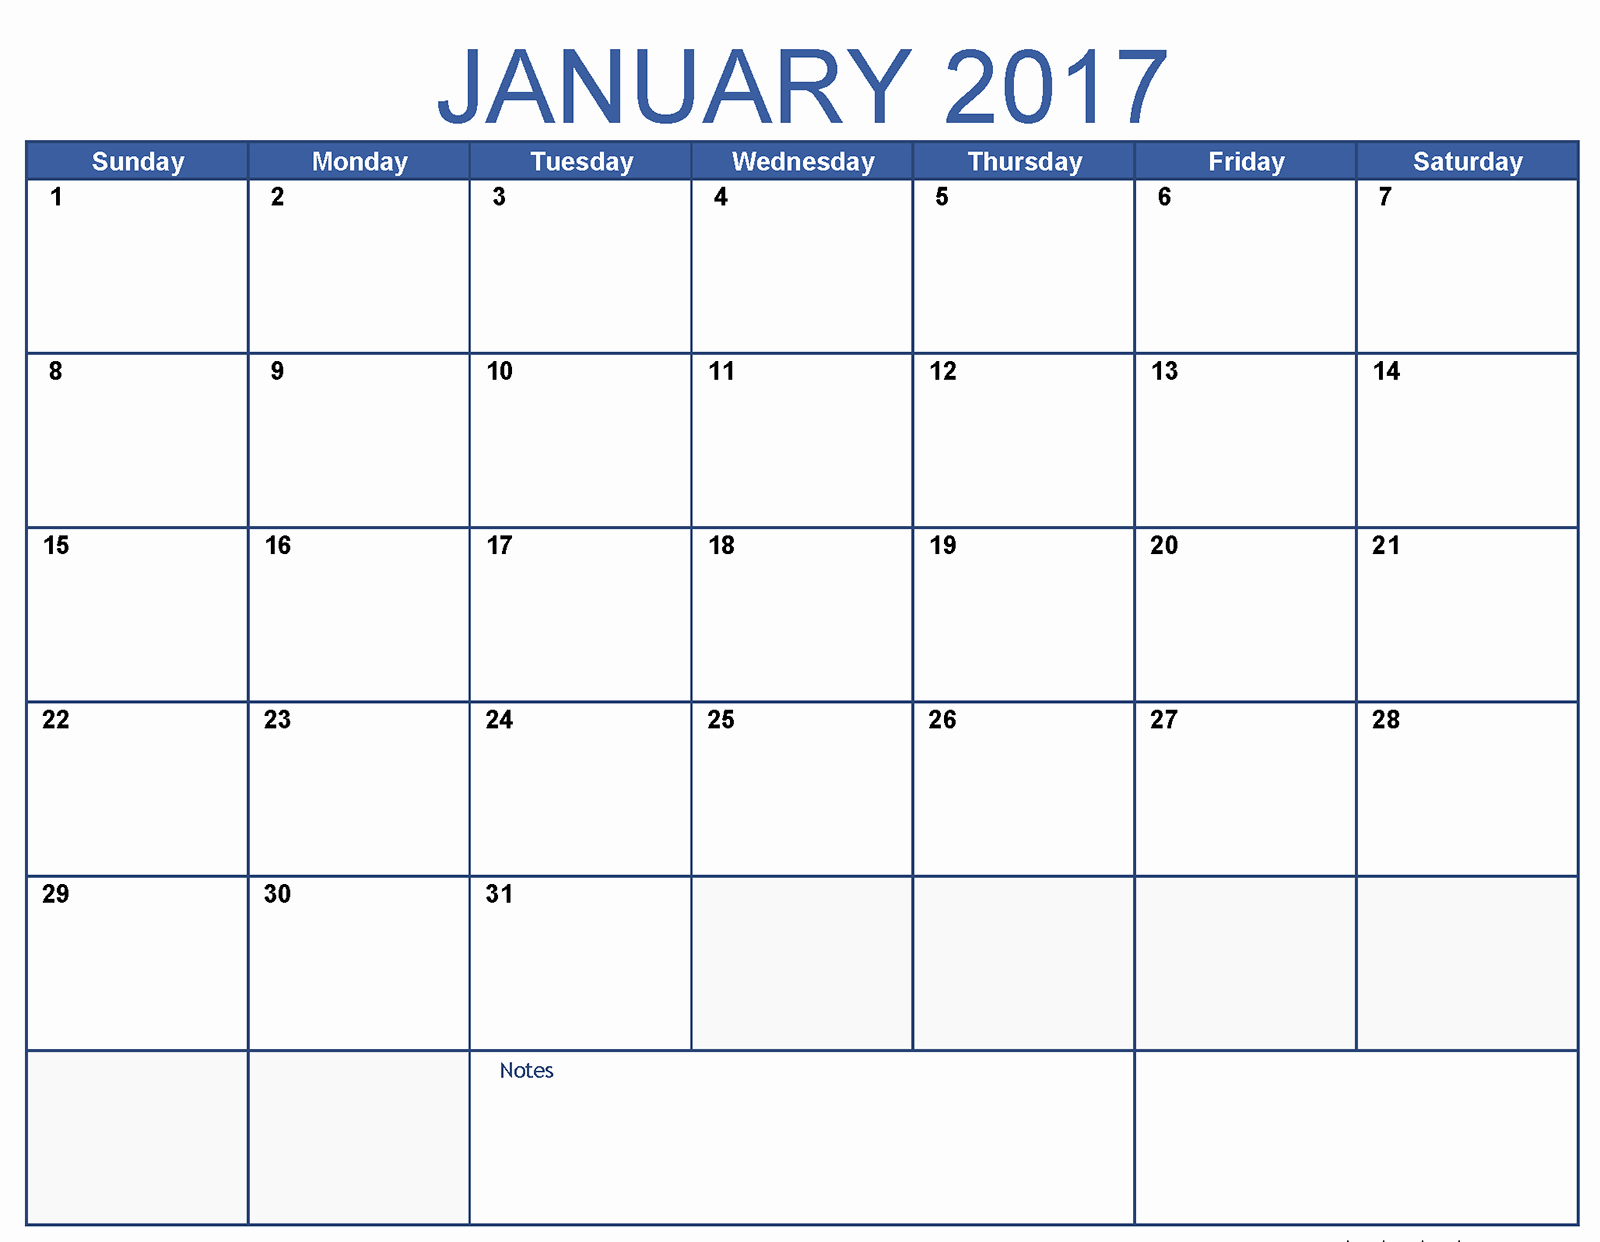 2017 Calendar Template Word Document Awesome January 2017 Word Calendar Wordcalendar